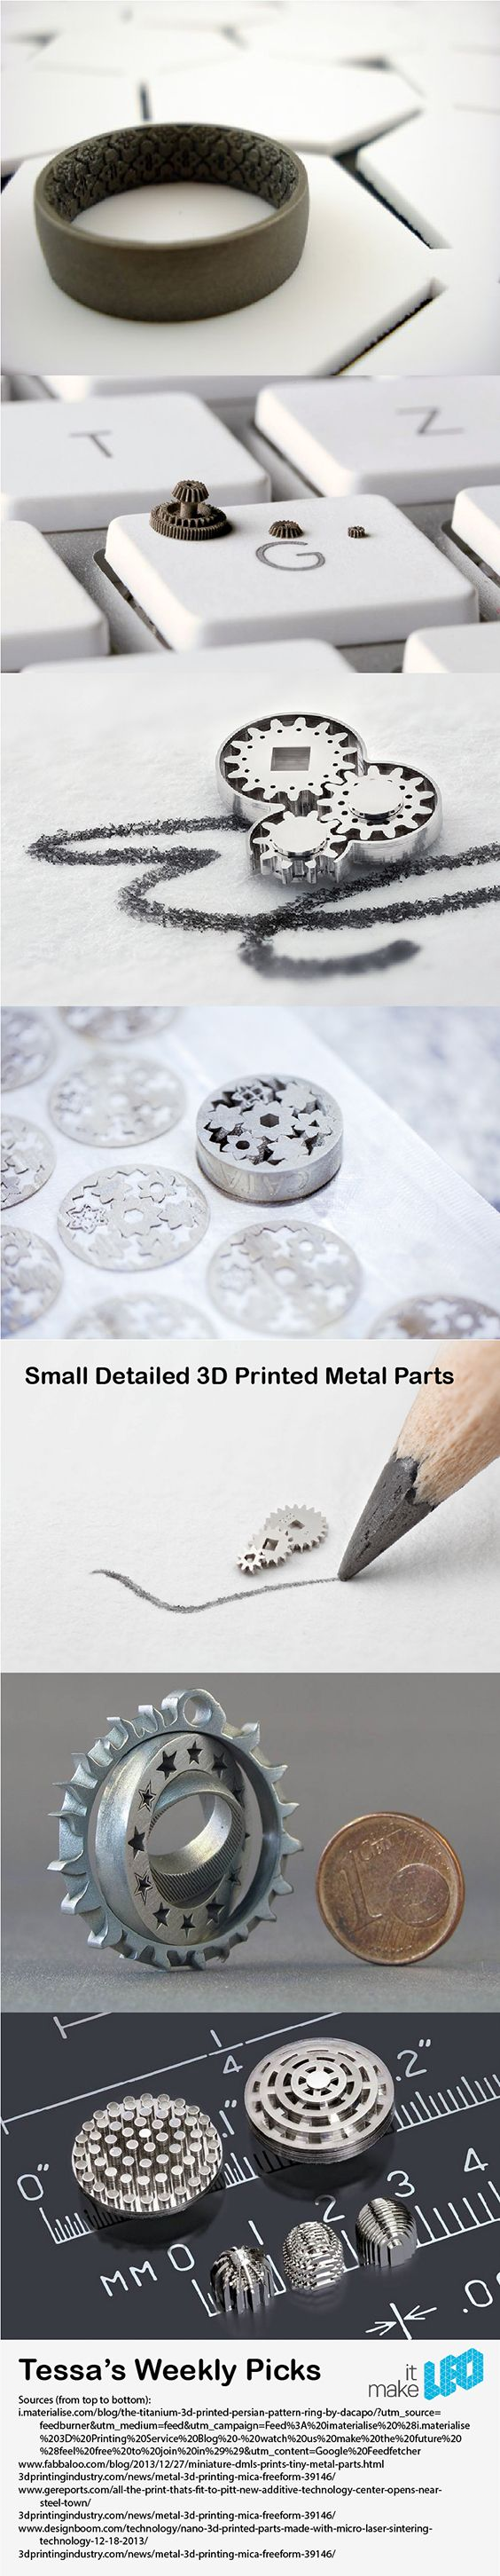 Tessa's Weekly Picks - It's All in the 3D Printed Metal Details